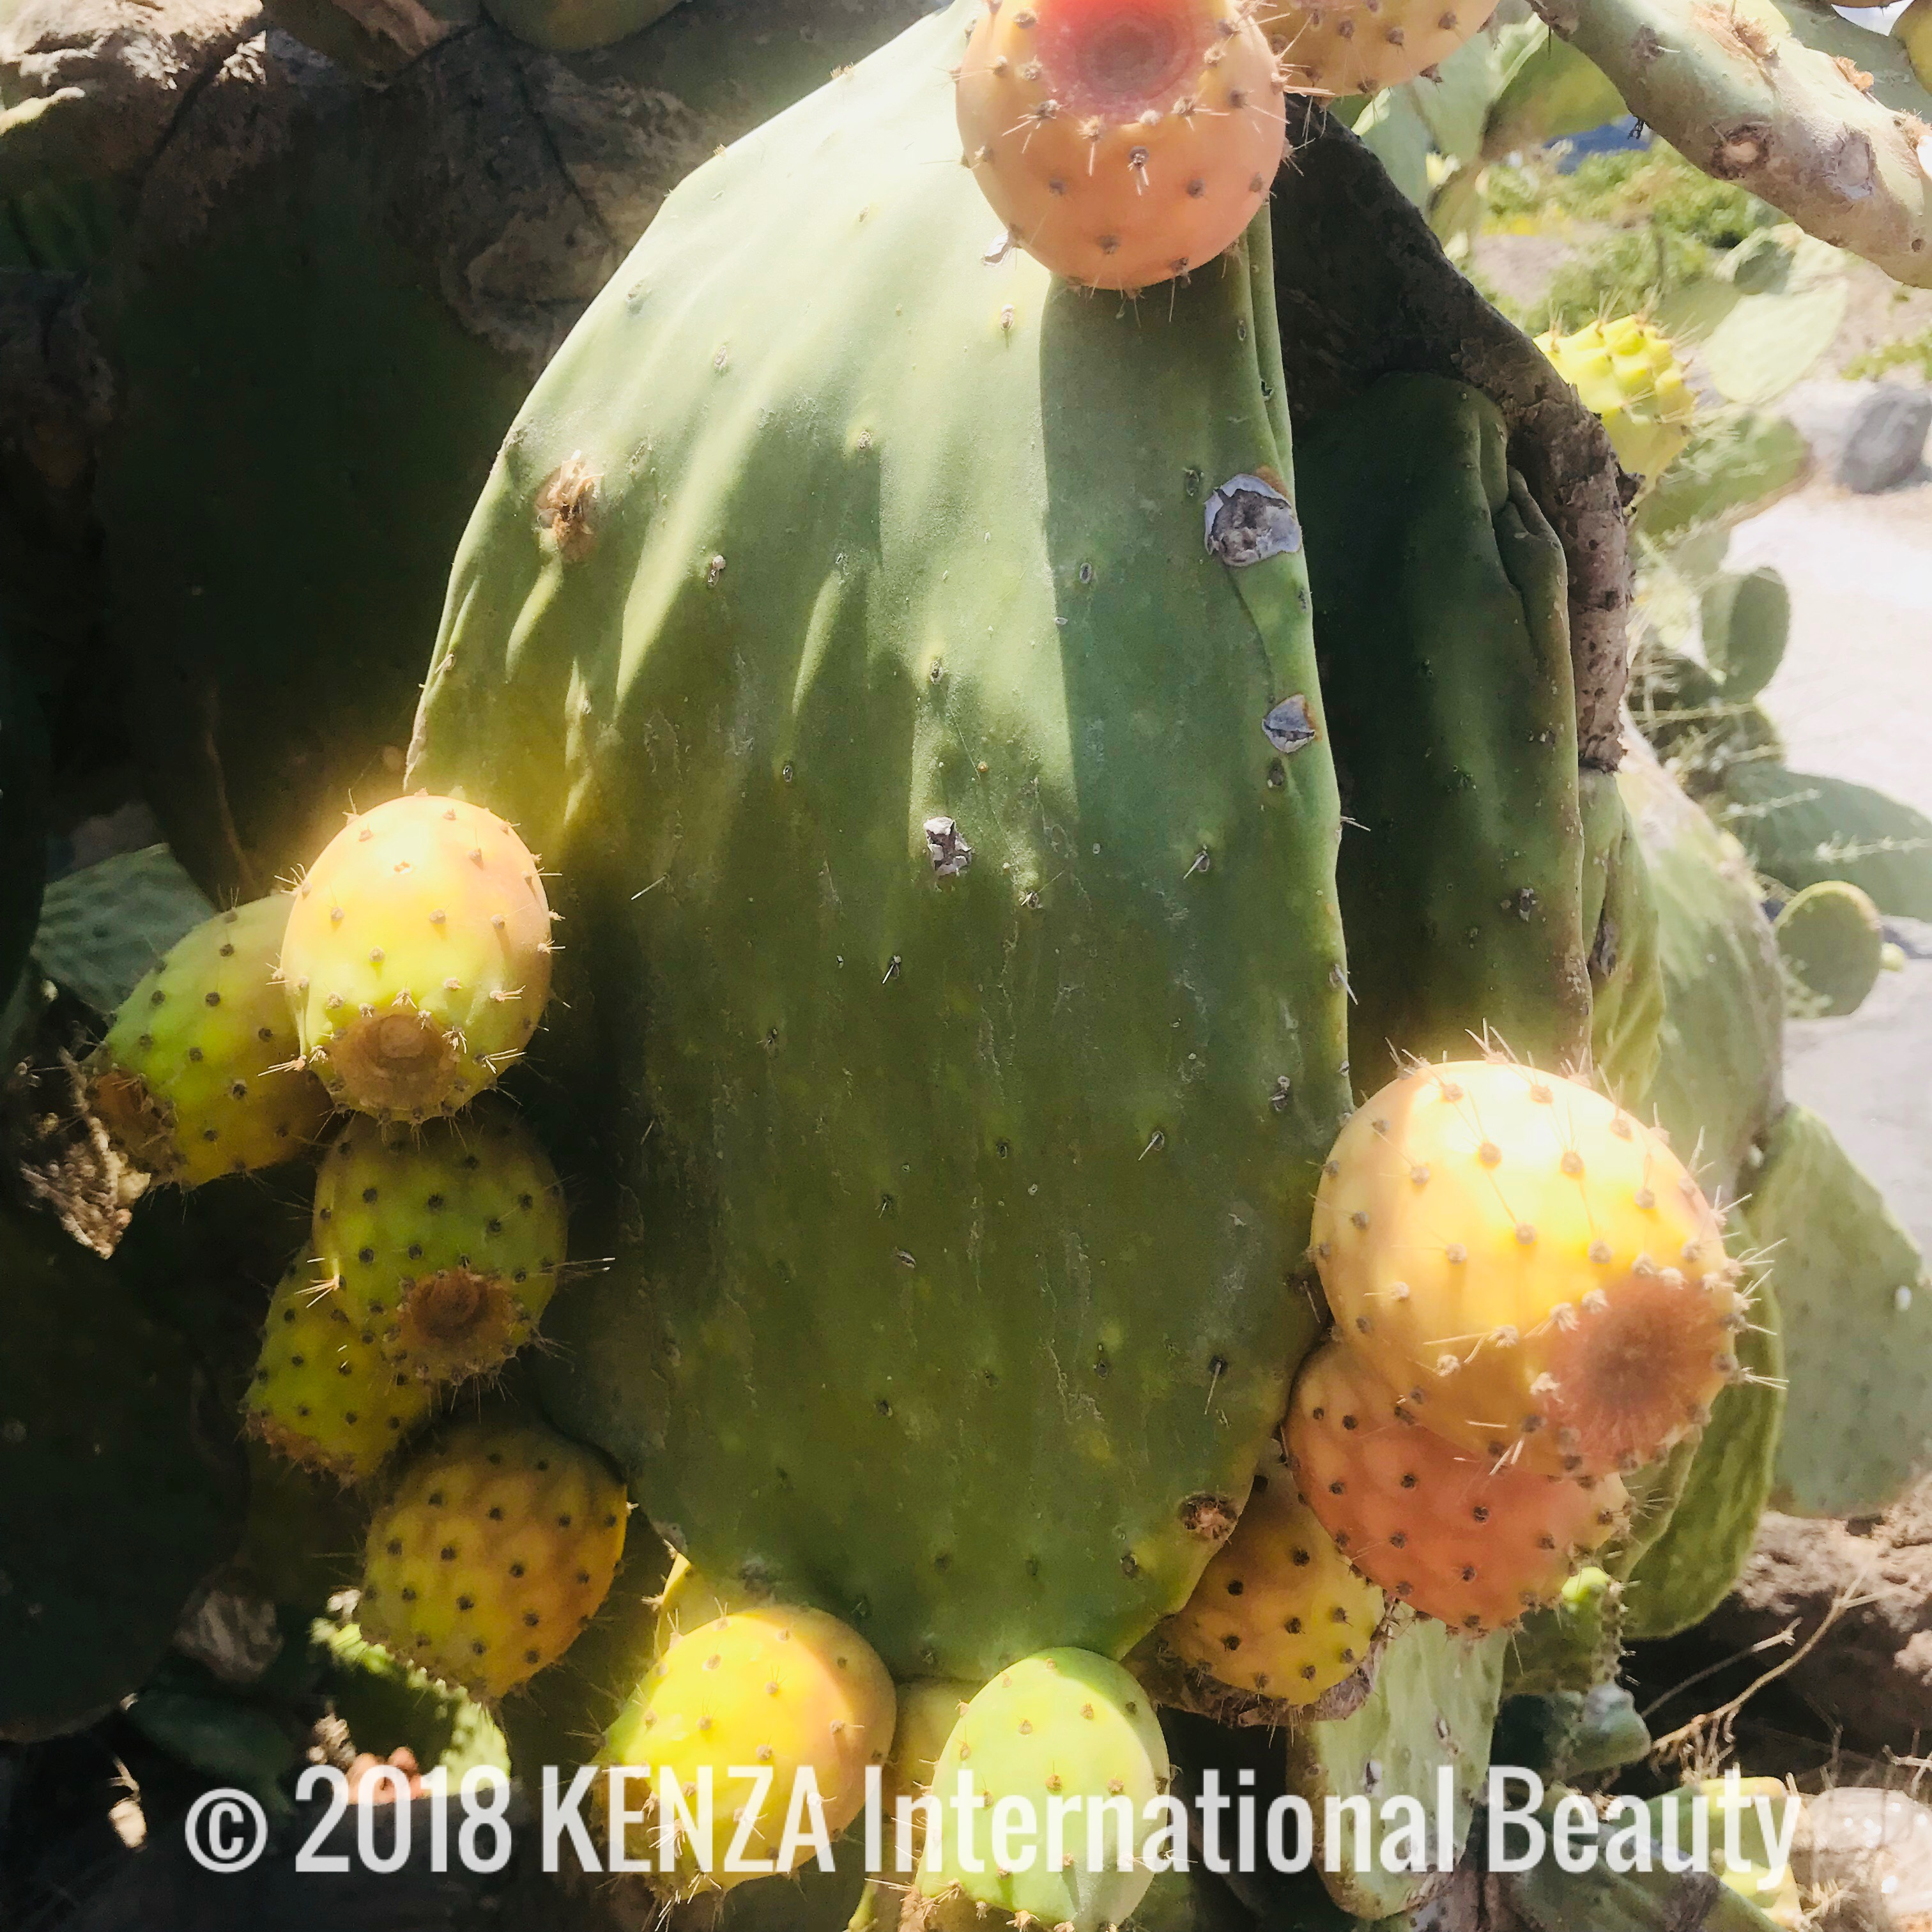 Cactus Fruits Greece © 2018 KENZA International Beauty